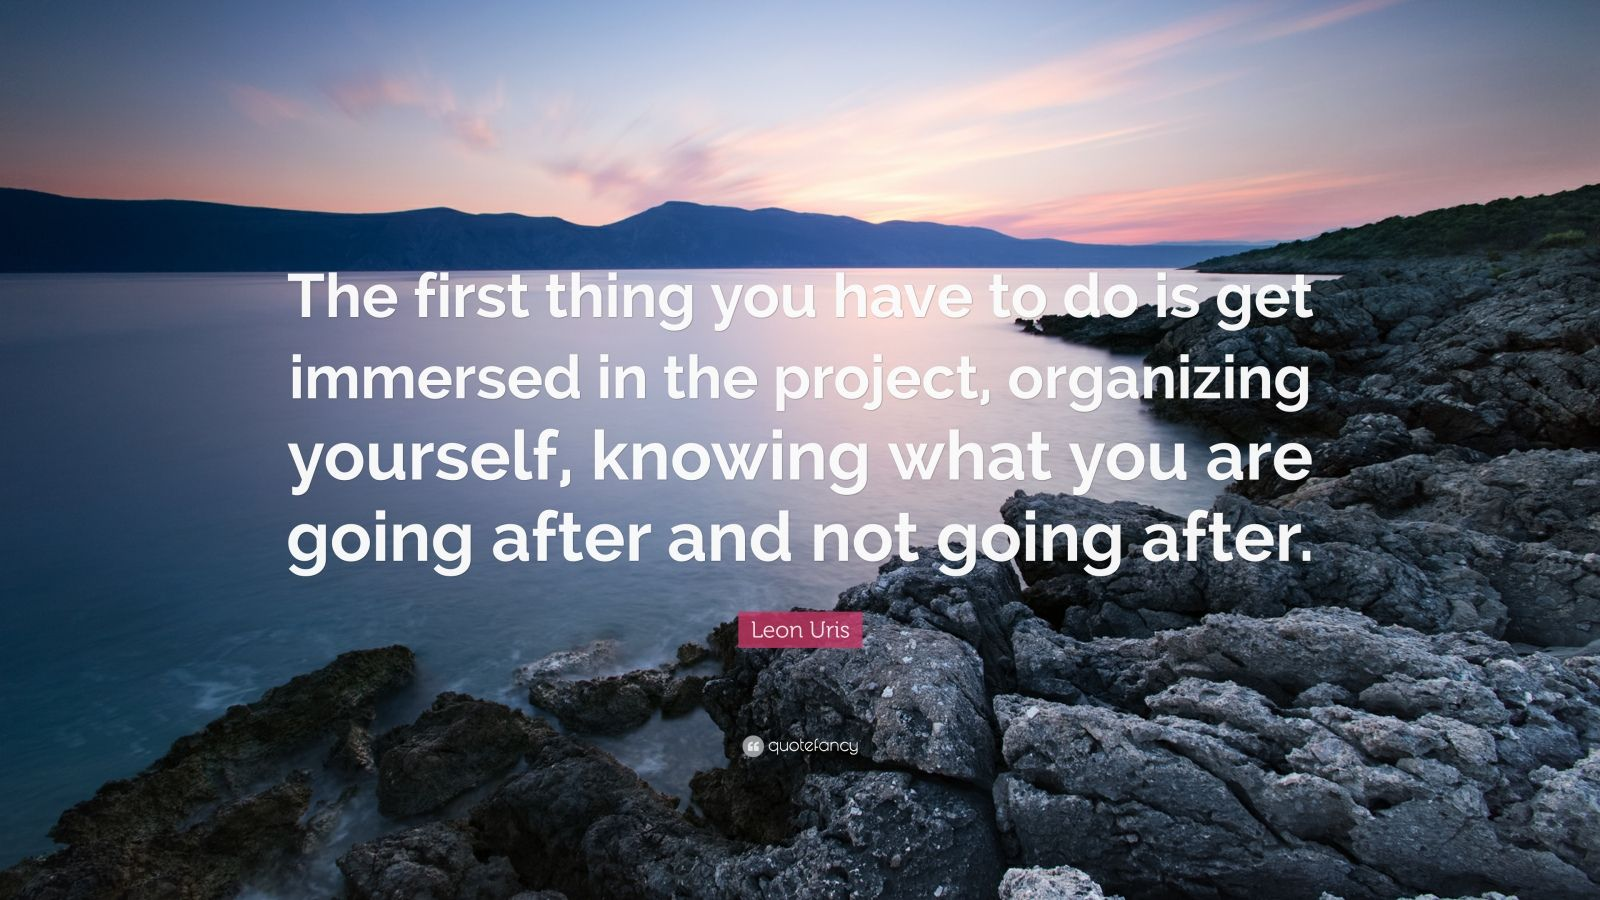 """Leon Uris Quote: """"The first thing you have to do is get immersed in the project, organizing yourself, knowing what you are going after and not going after."""""""